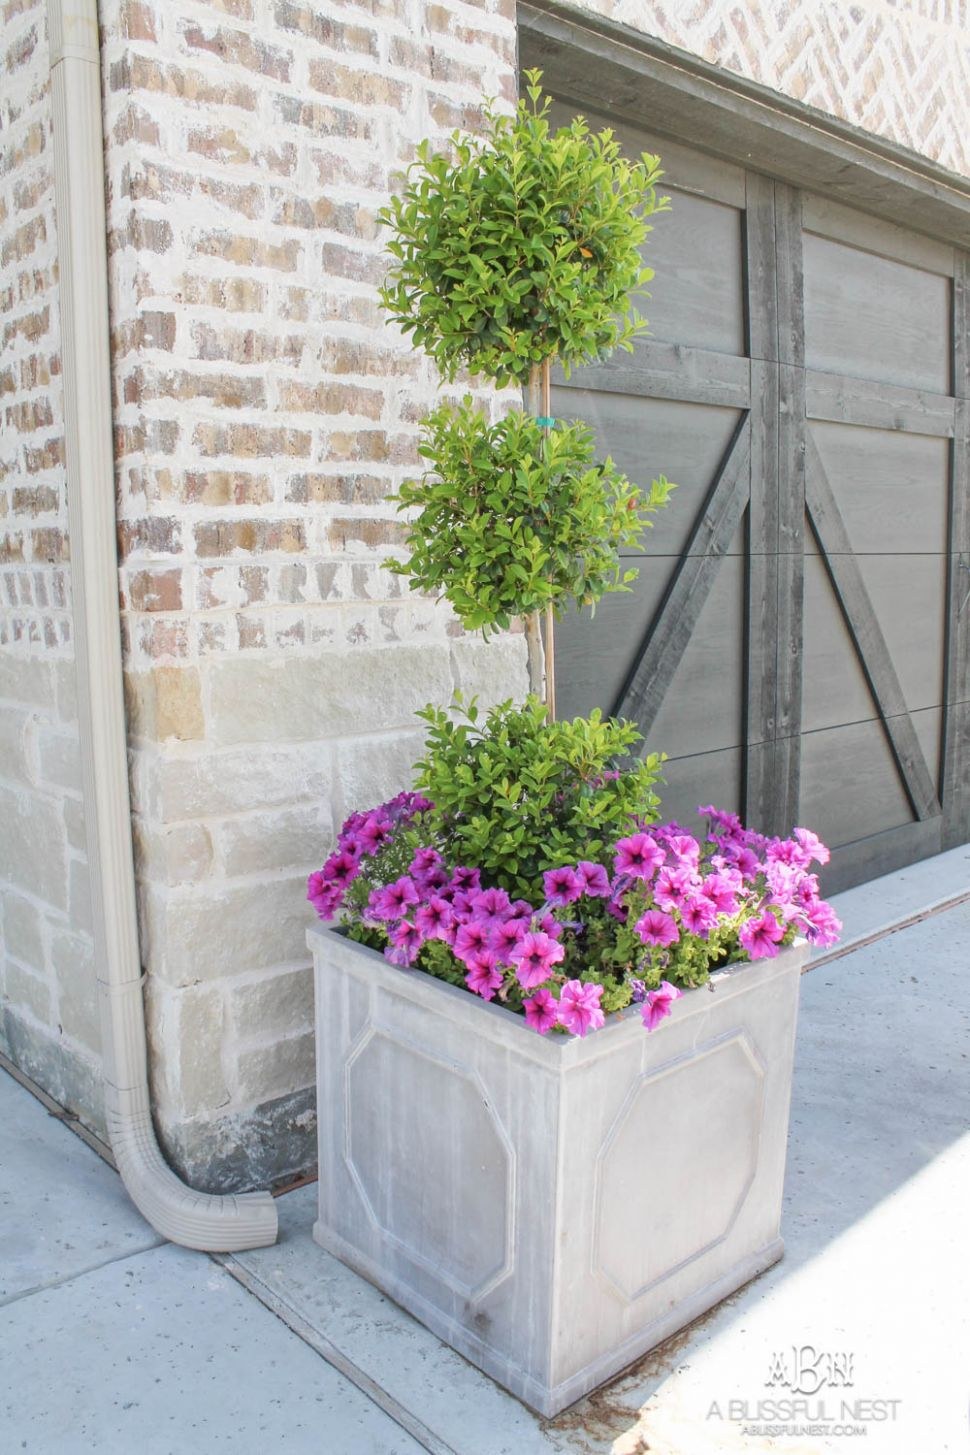 Front Porch Outdoor Planter Ideas You'll Love - A Blissful Nest